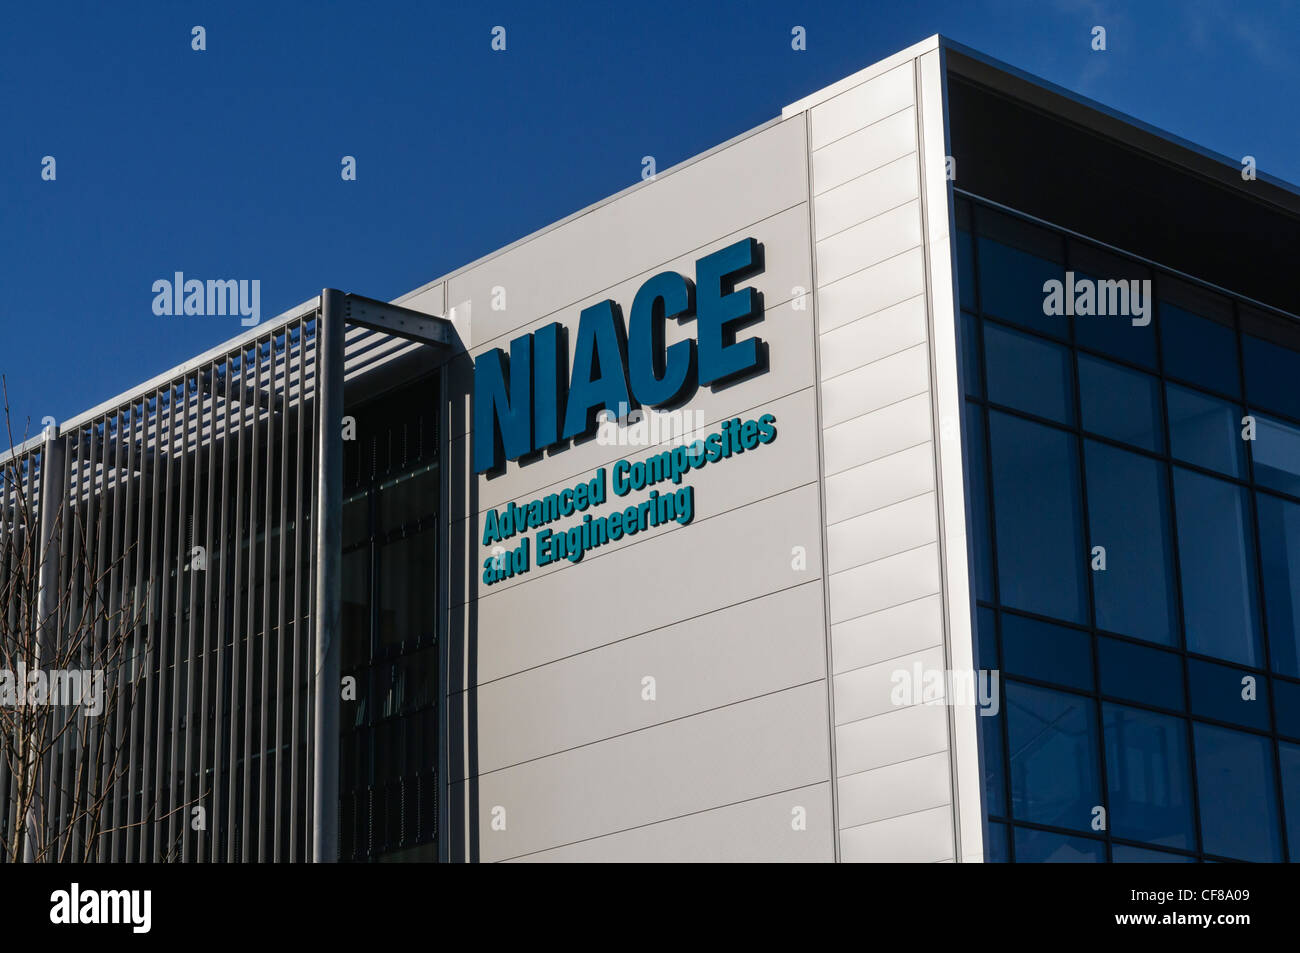 Northern Ireland Adfvanced Composites and Engineering (NIACE) building - Stock Image